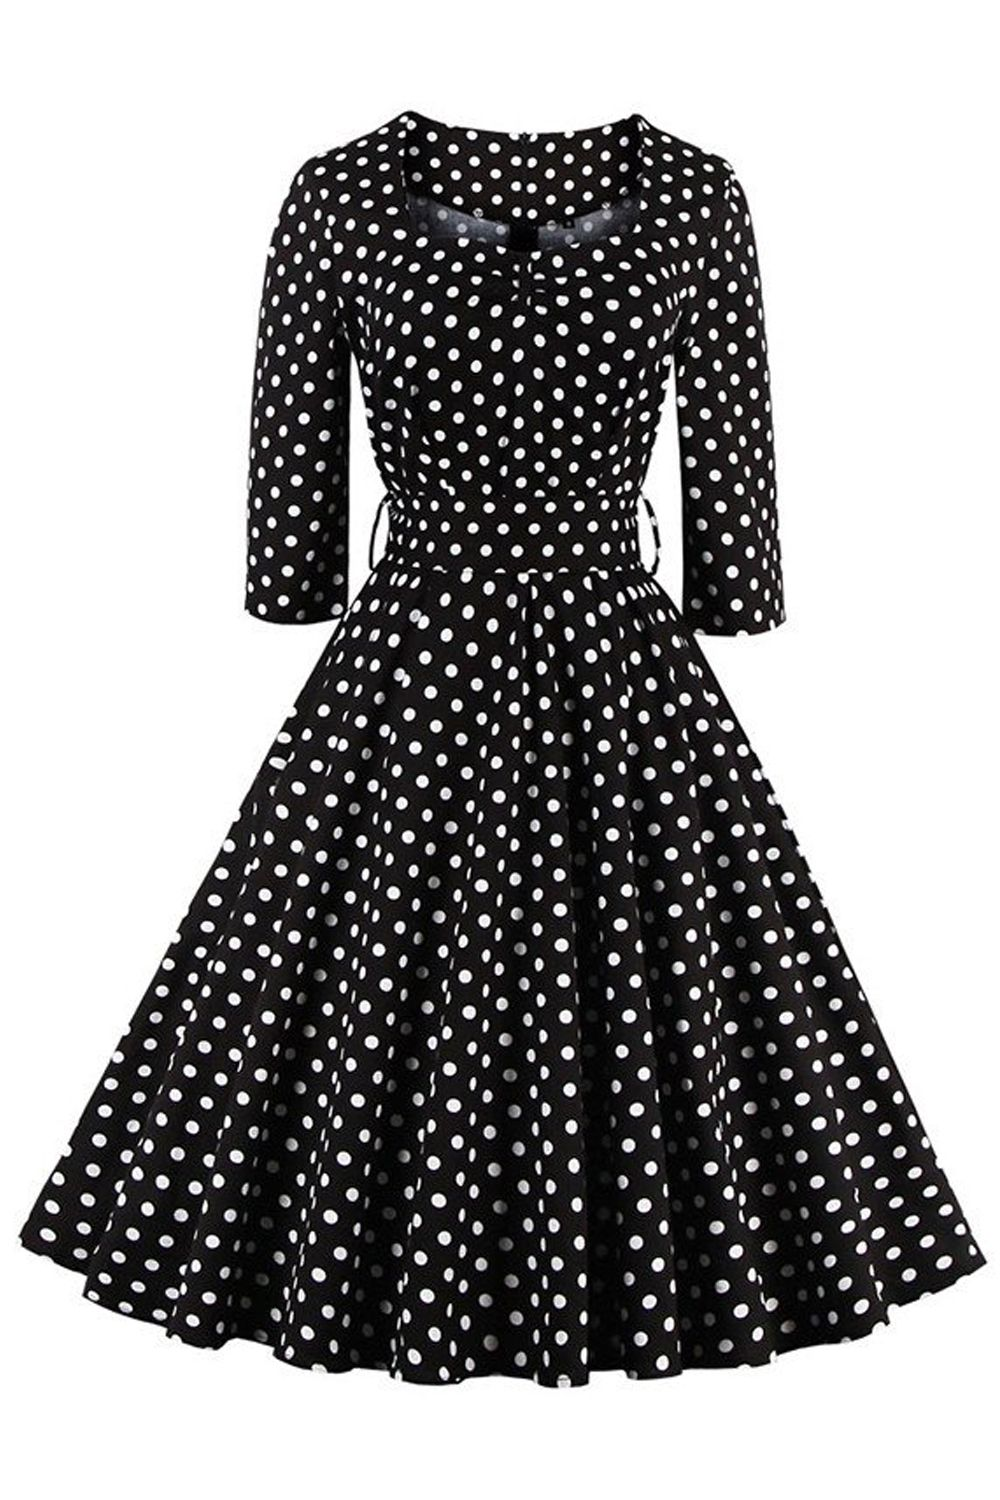 236c1848a7 ... Buy Quality women dress 2016 directly from China women dress Suppliers:  Robe Femme Winter Autumn Womens Dress 2016 Black Dress White Polka Dots  Vintage ...